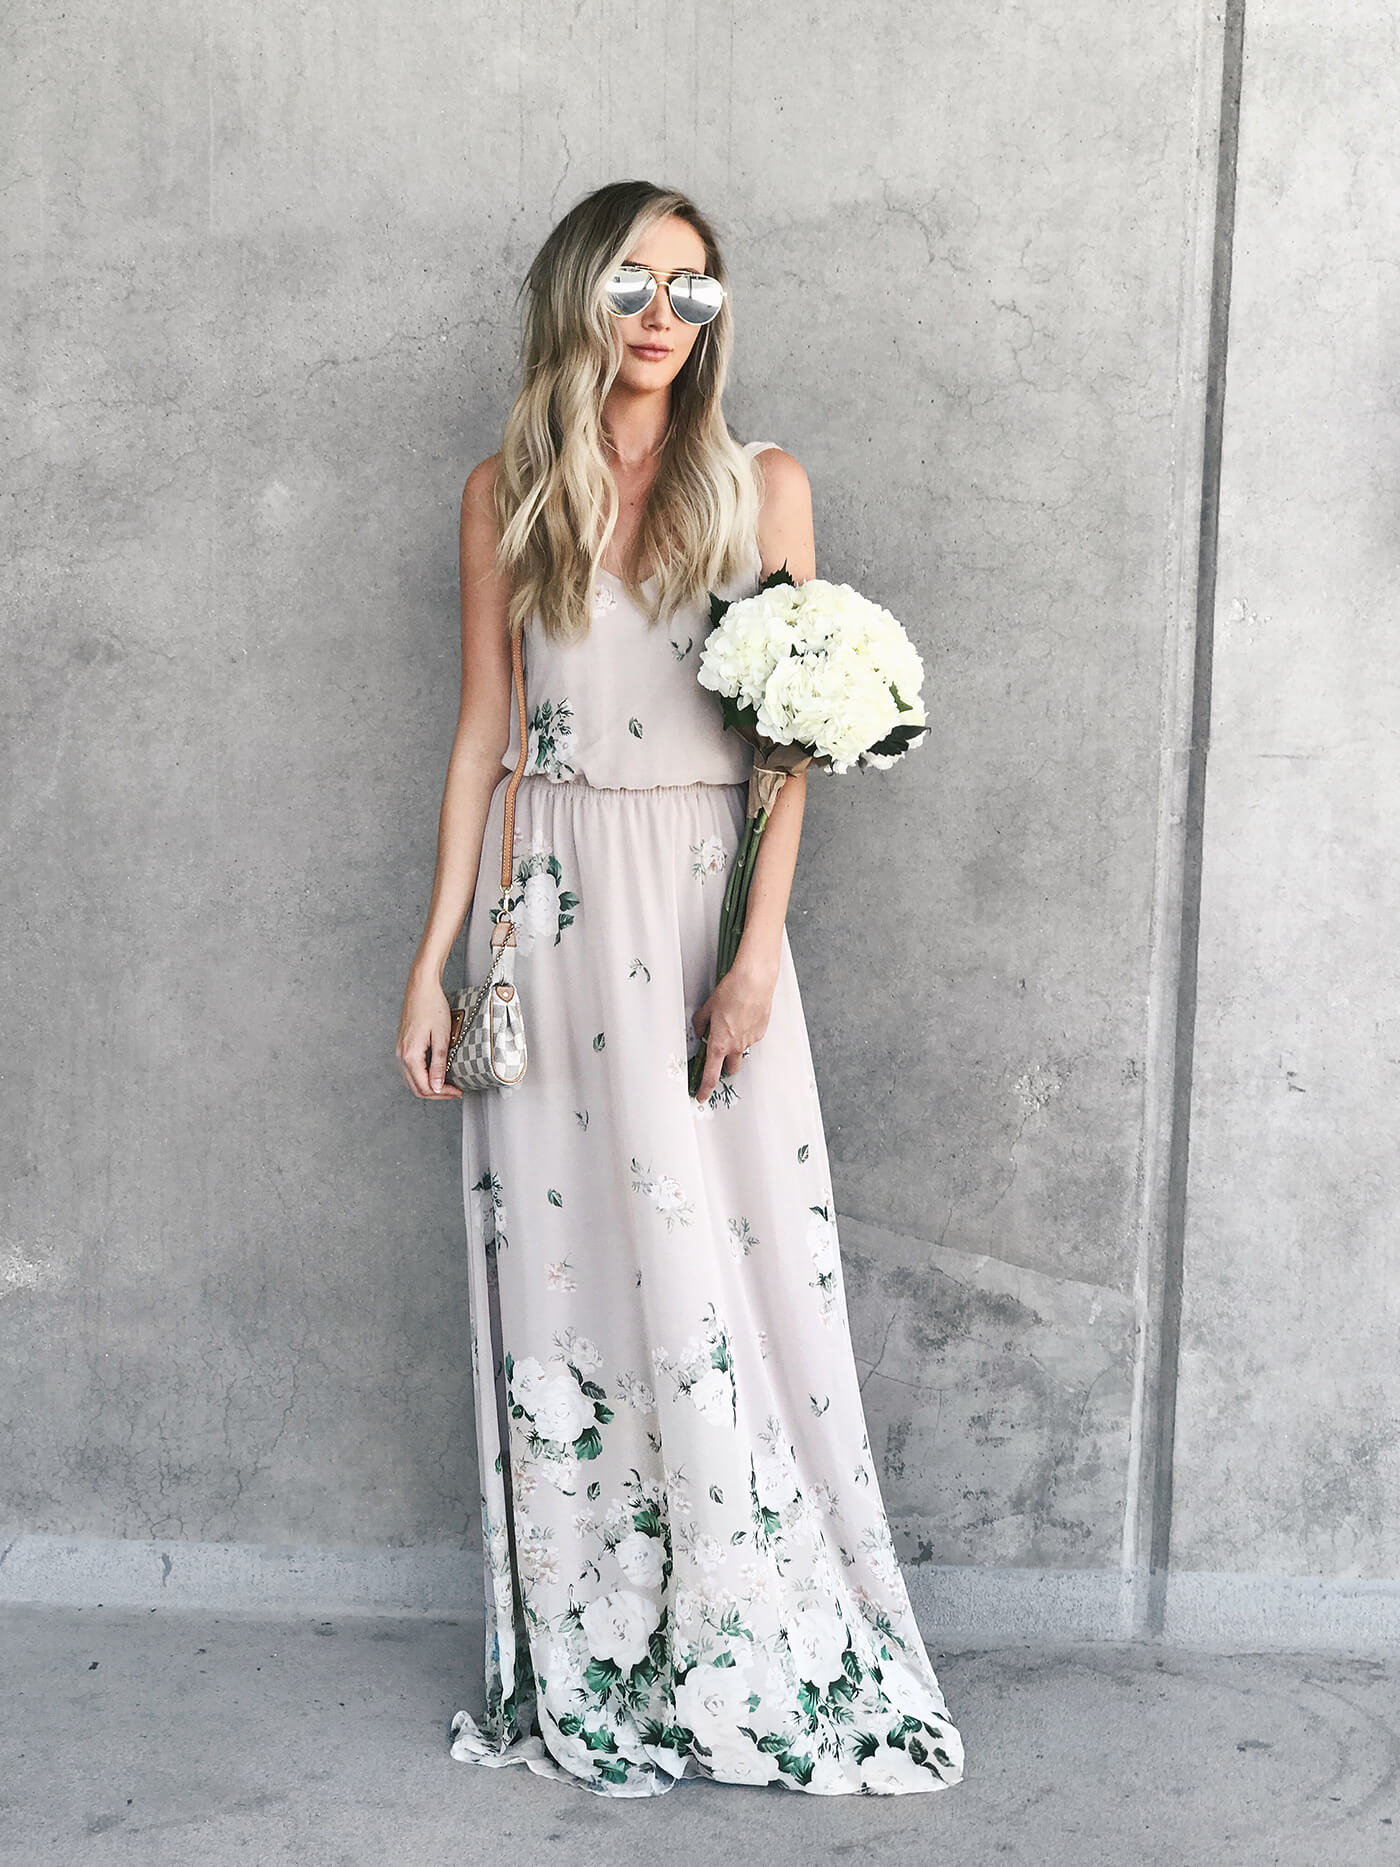 Carly Cristman - Summer Bridesmaid Dresses, bridesmaid dress ideas, floral bridesmaid dresses, summer maxi dress, flora maxi dress